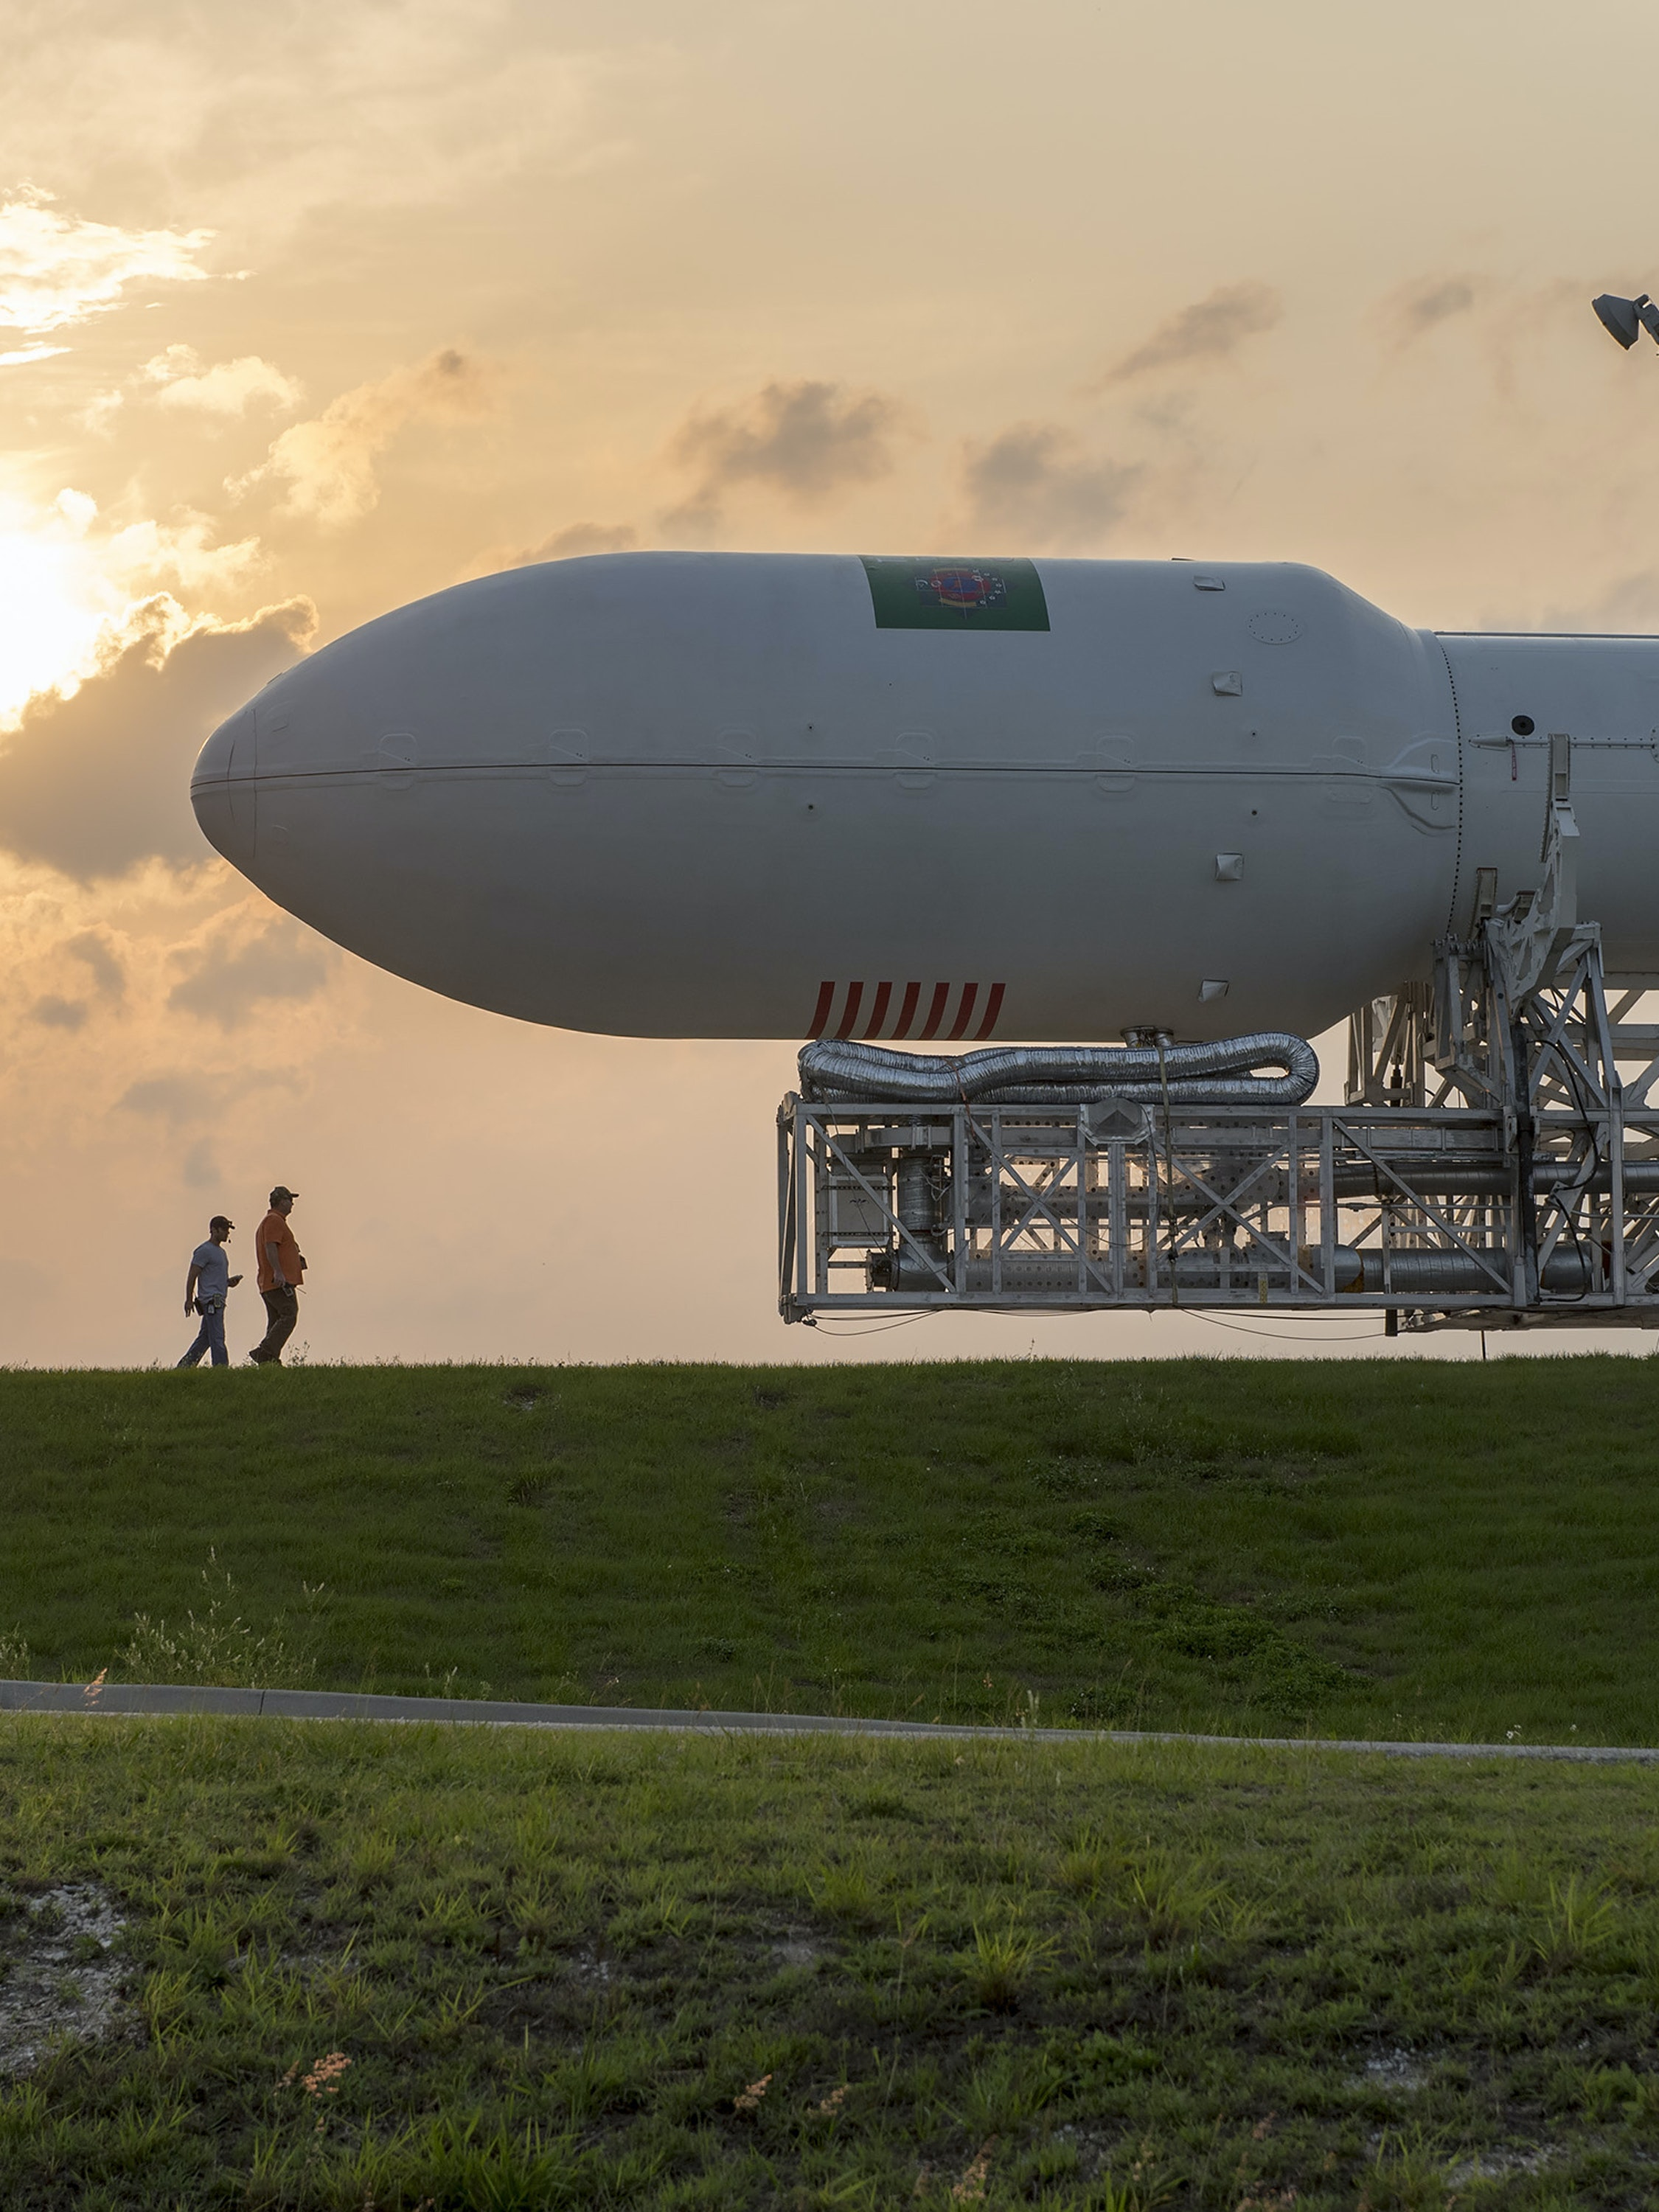 CAPE CANAVERAL, FL - APRIL 26: In this handout provided by the National Aeronautics and Space Administration (NASA), SpaceX's Falcon 9 is moved to the launch pad prior to the rocket's Thales Alenia Space launch attempt on April 26, 2015 in Cape Canaveral, Florida. (Photo by NASA via Getty Images)